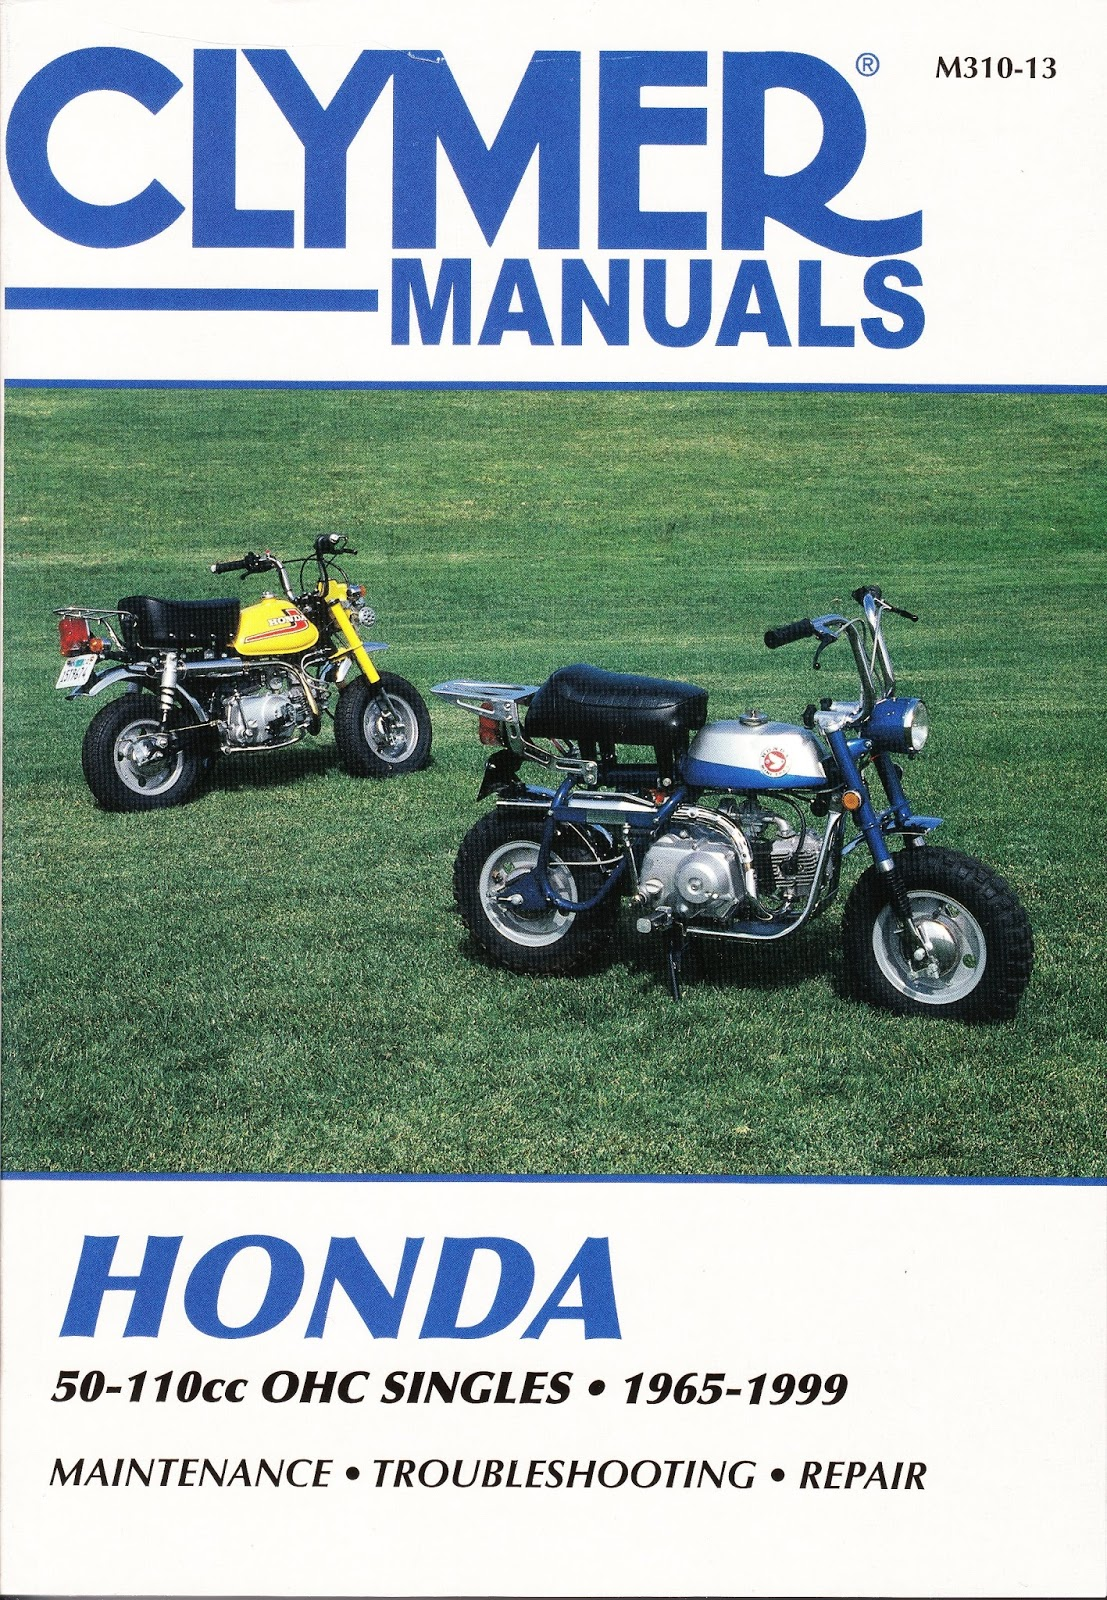 UPDATE: I also found this Australian Shop Manual which includes the early  Z50 & QA50